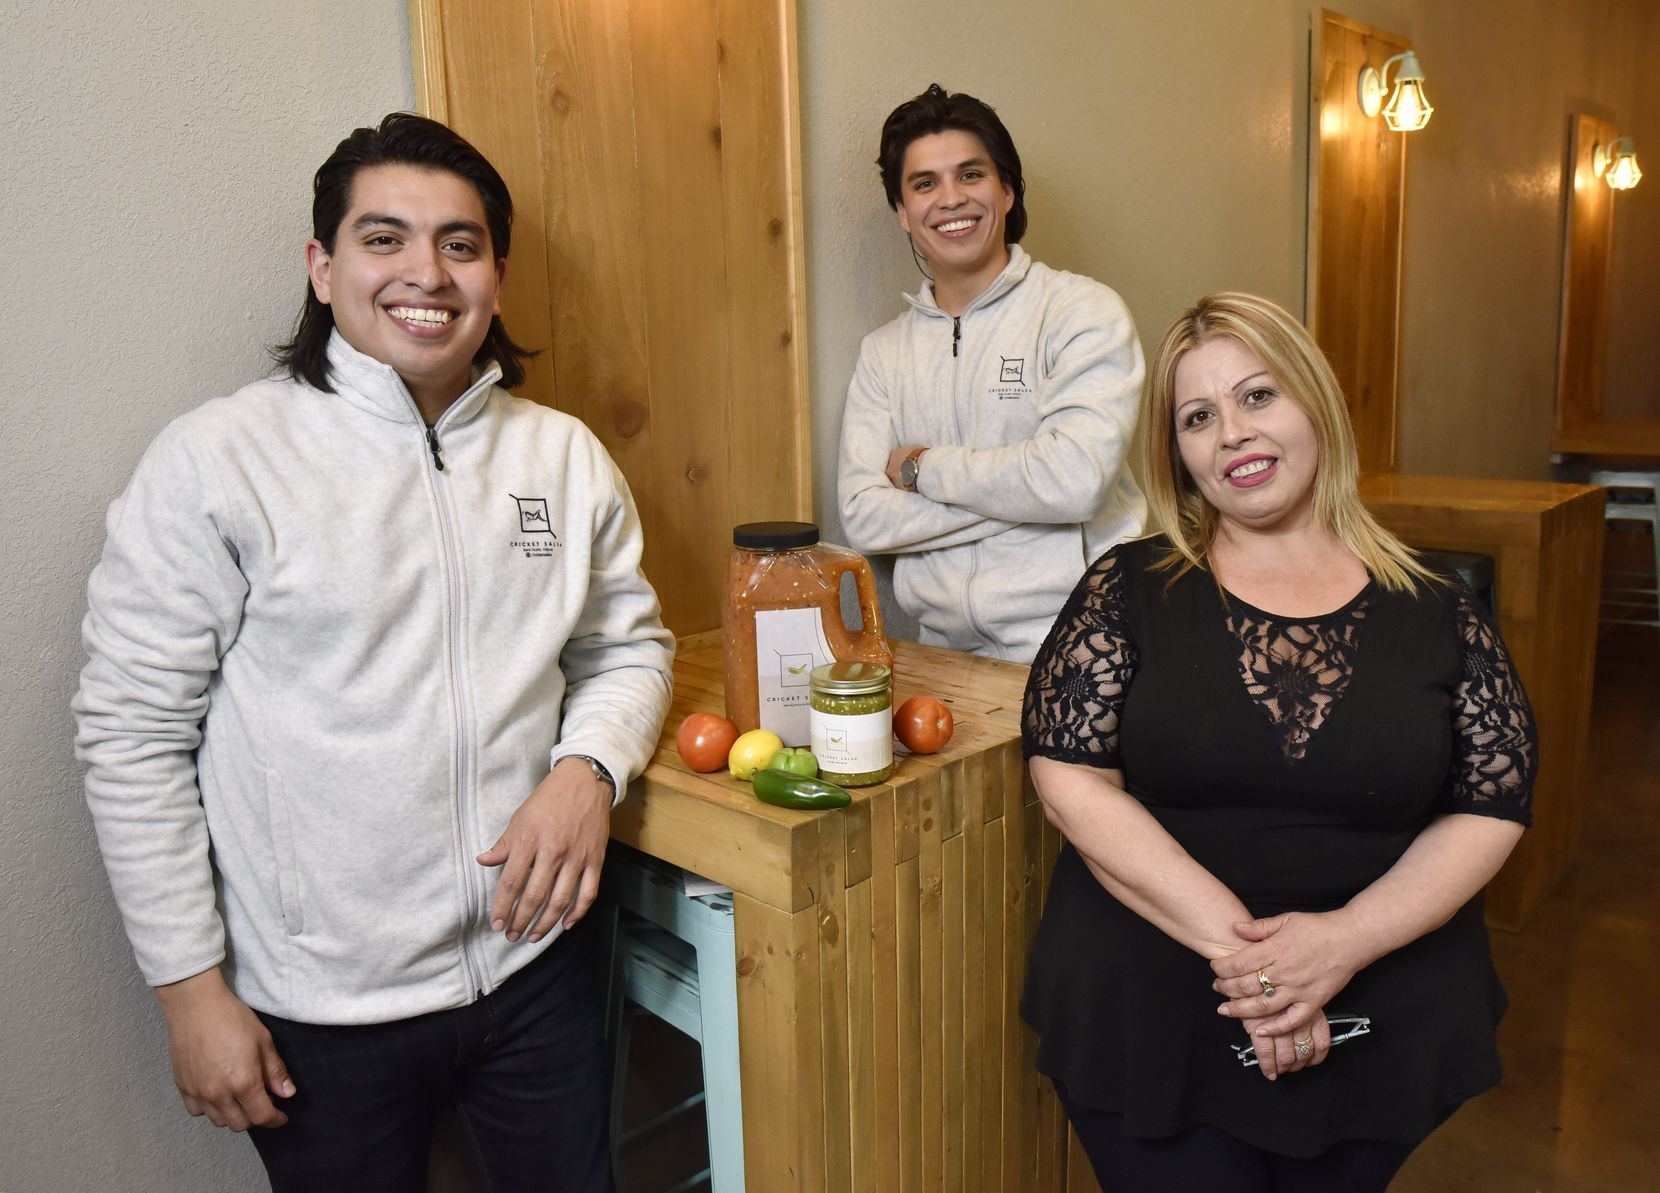 Cricket Salsa co-founders Daniel Costilla (left), 31, and Christian Costilla, 28, use a salsa recipe created by their mother, Martha Costilla.